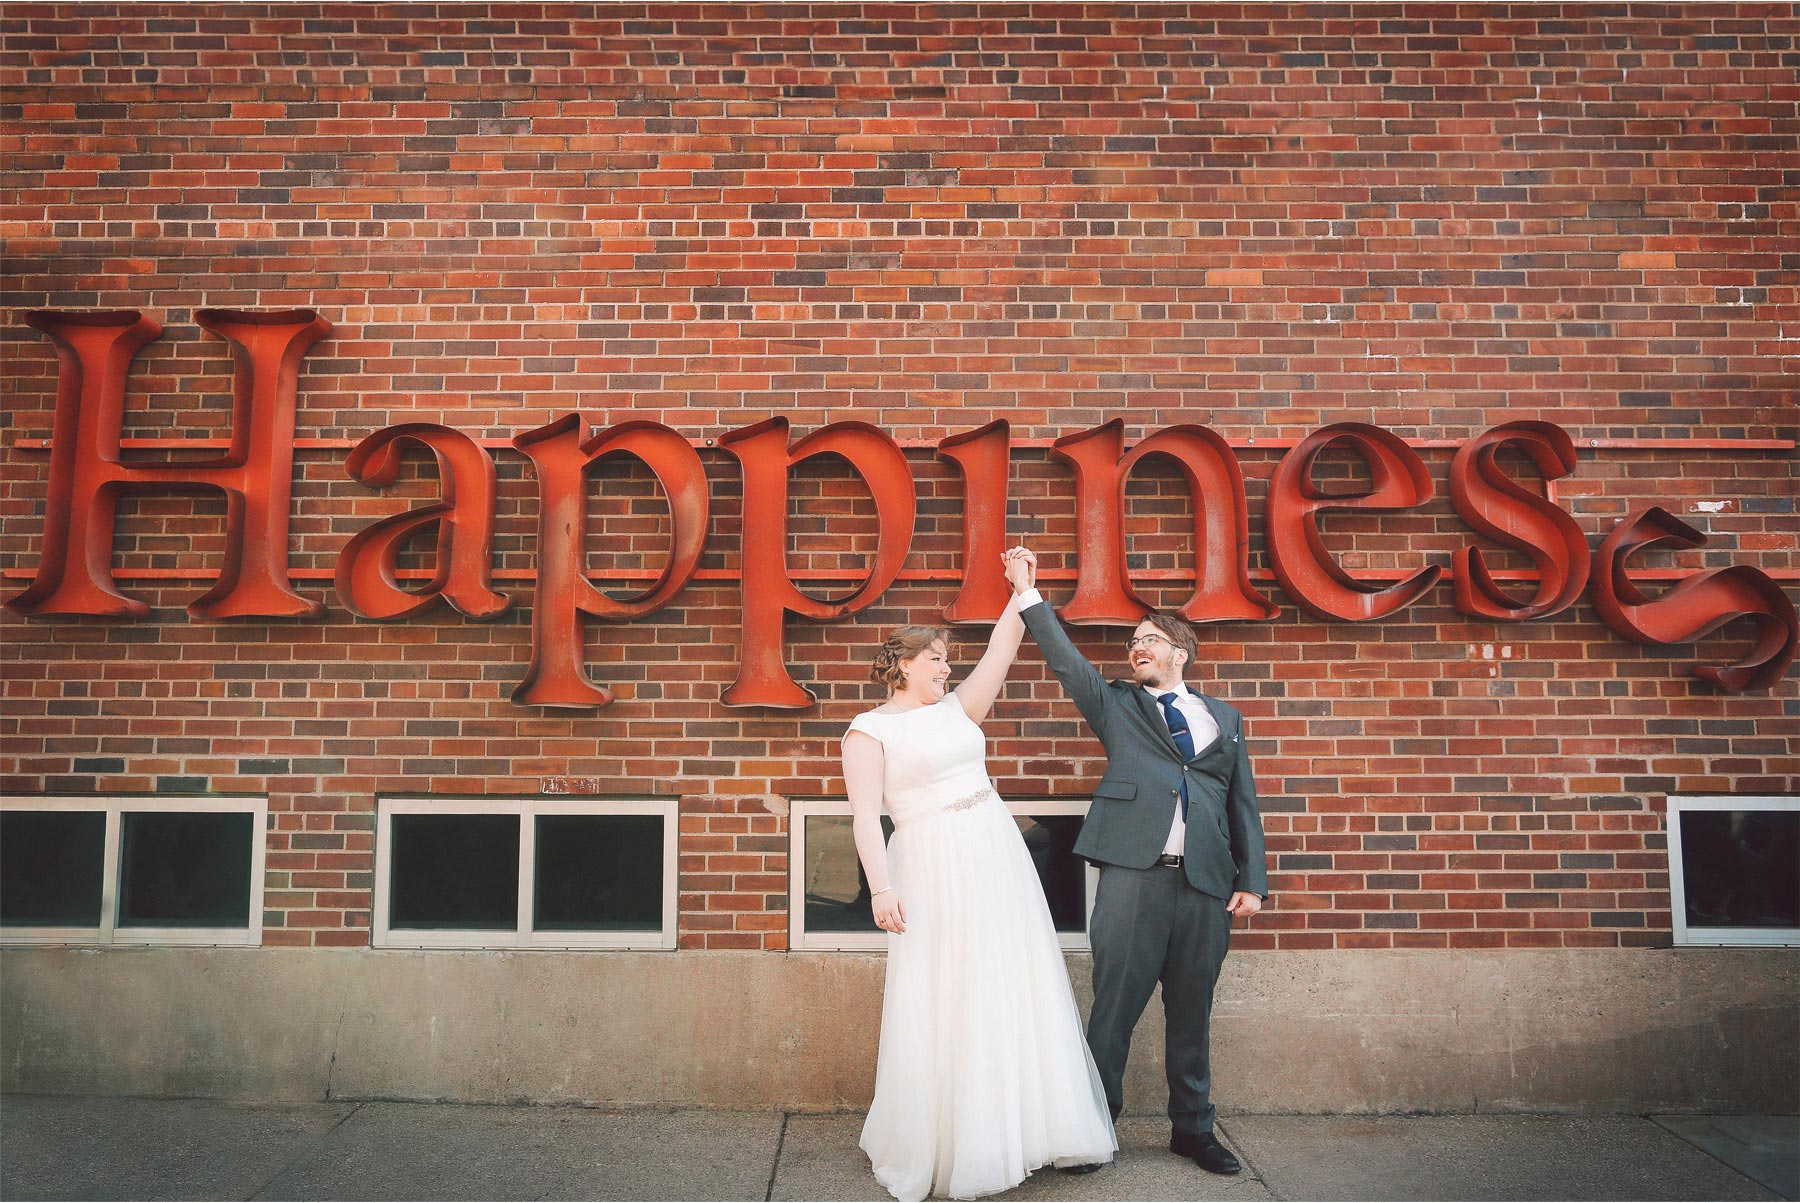 10-Minneapolis-Wedding-Photography-by-Vick-Happiness-Downtown-Libby-and-Nathan.jpg